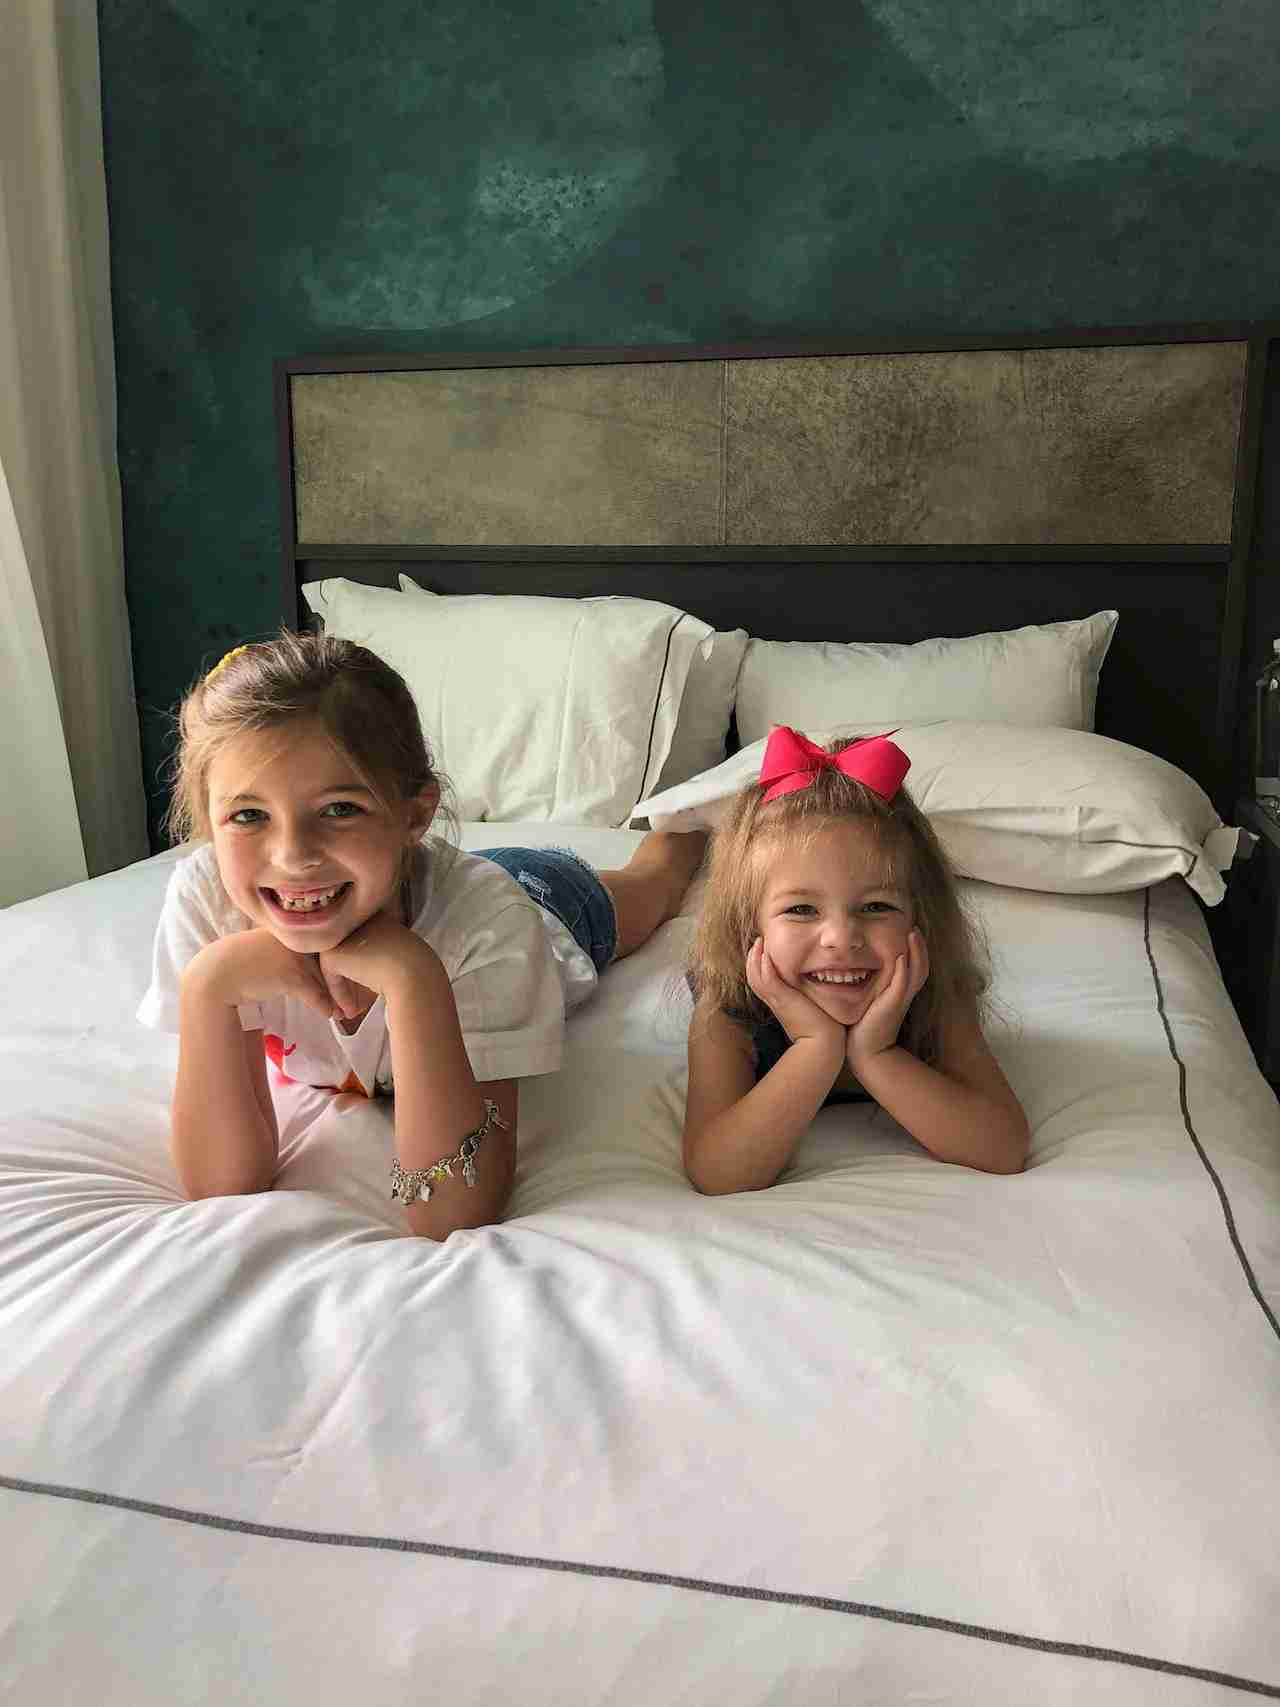 Our girls felt right at home at the Kimpton Van Zandt